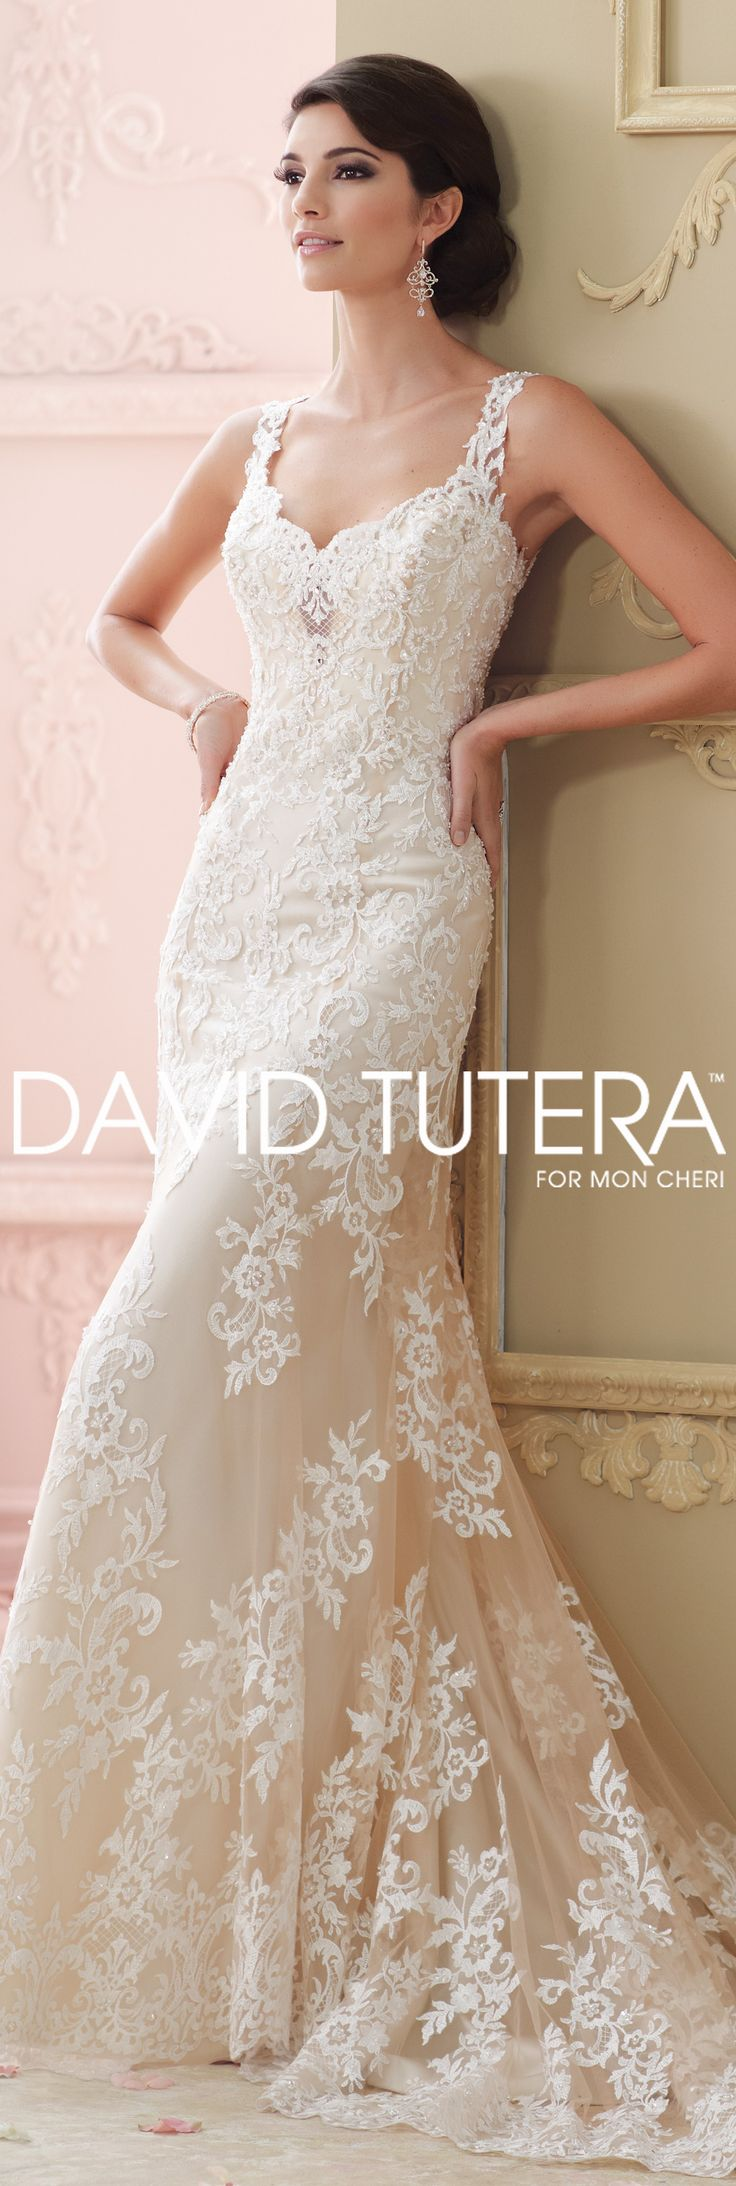 The David Tutera for Mon Cheri Fall 2015 Wedding Gown Collection - Style No. 215278 Florine #laceweddingdresses